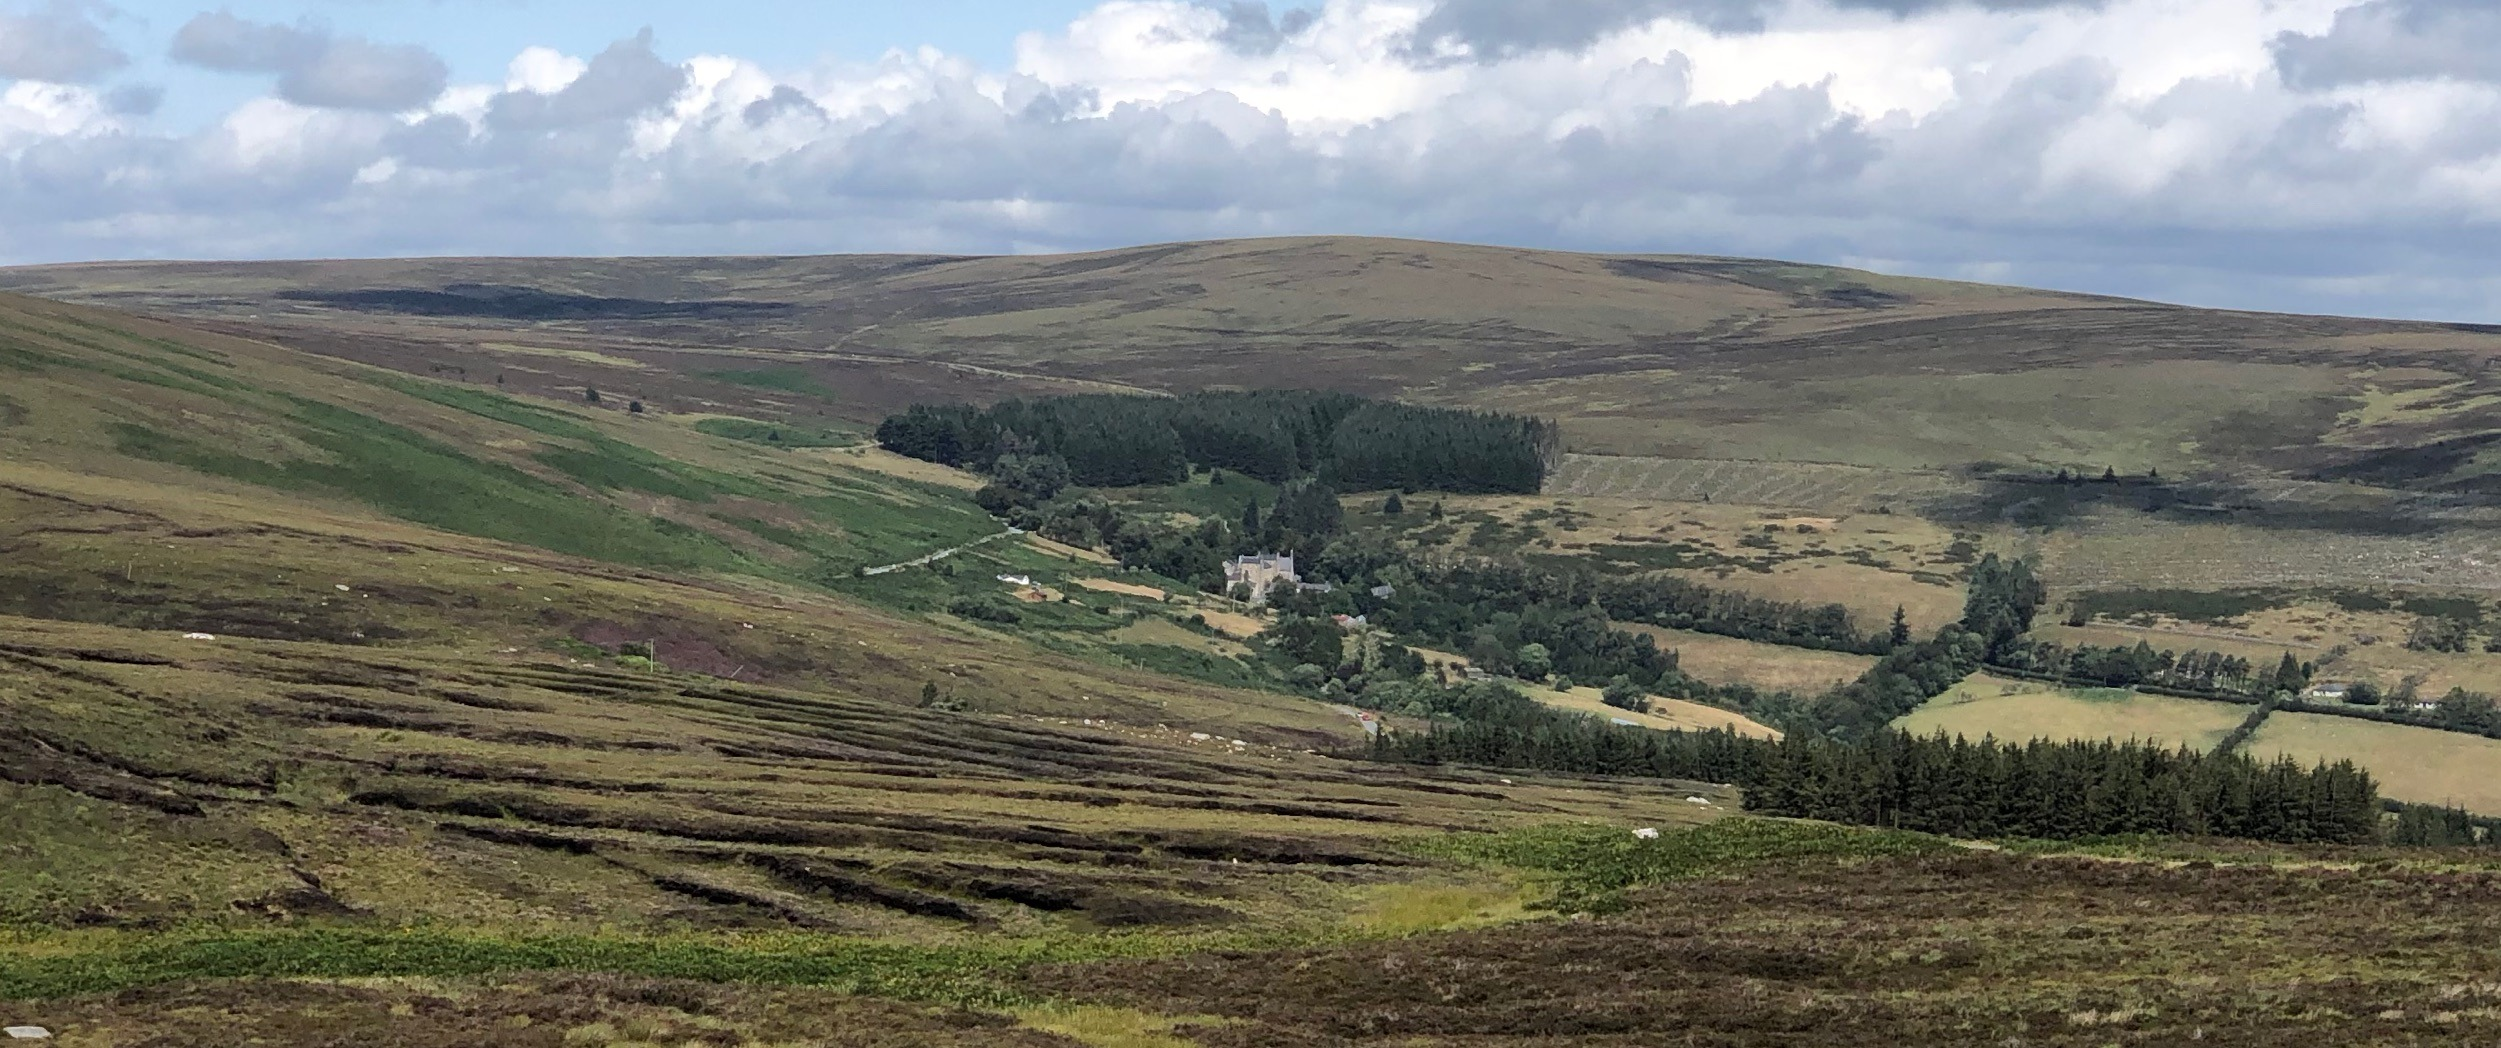 glencree-from-afar